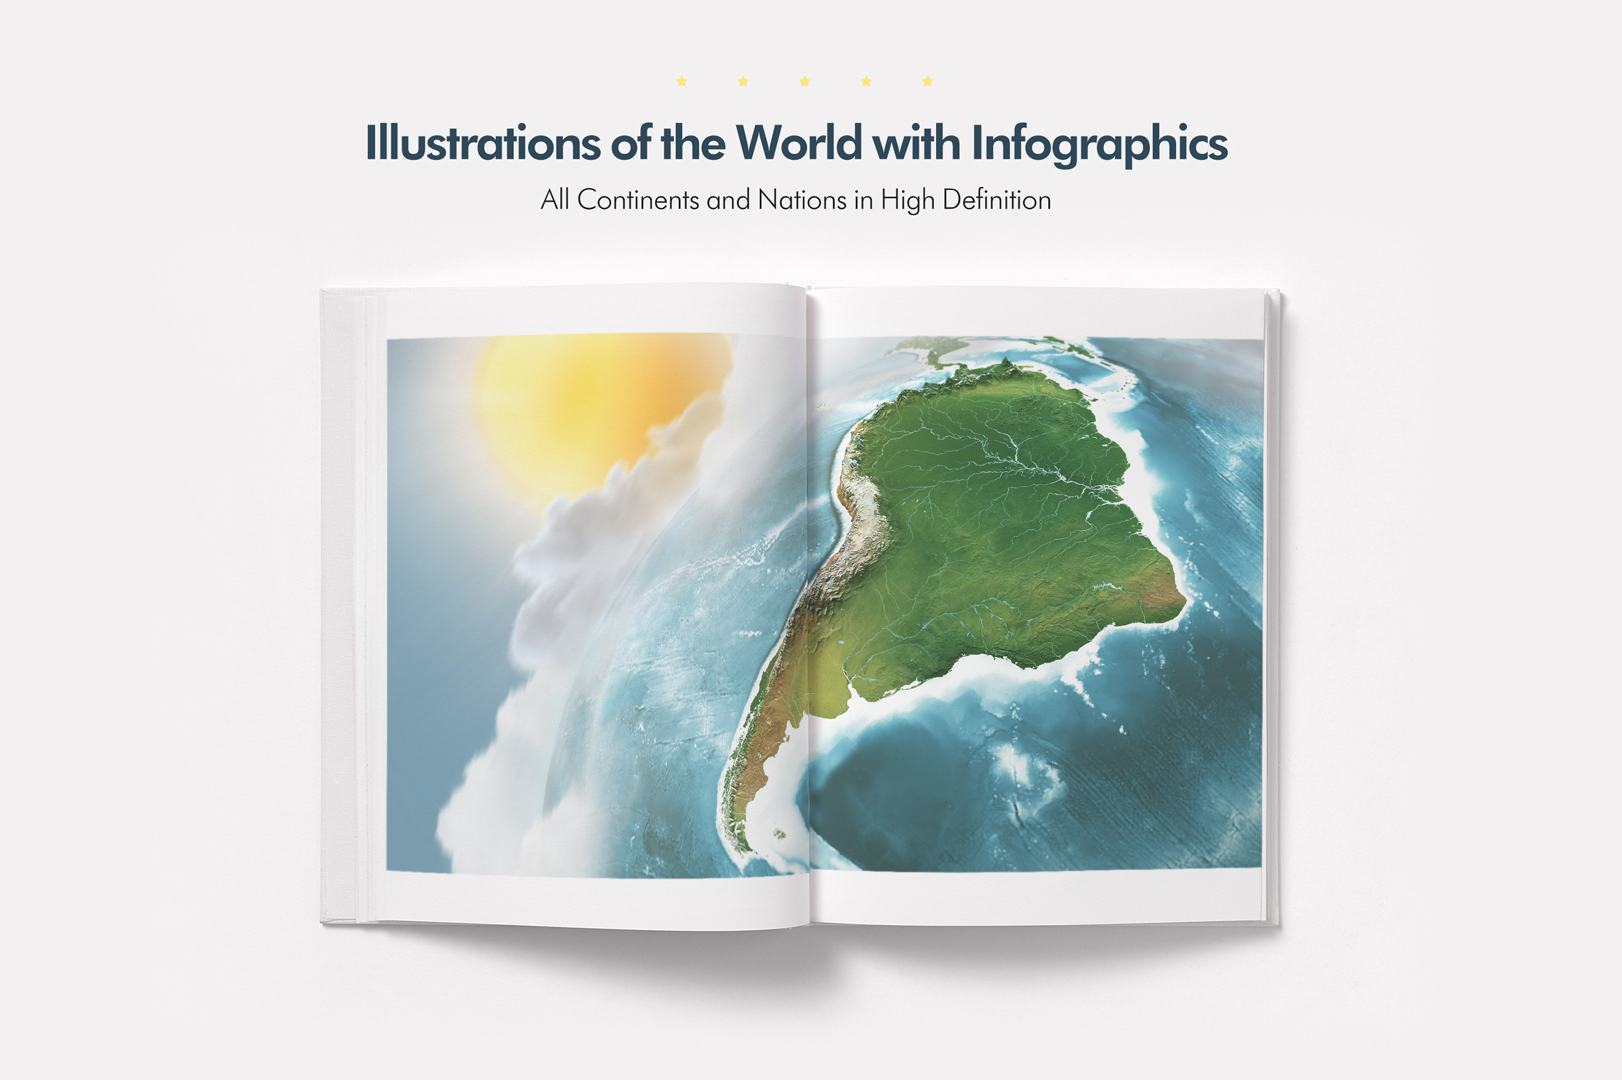 Illustrations of the World with Infographics example image 1